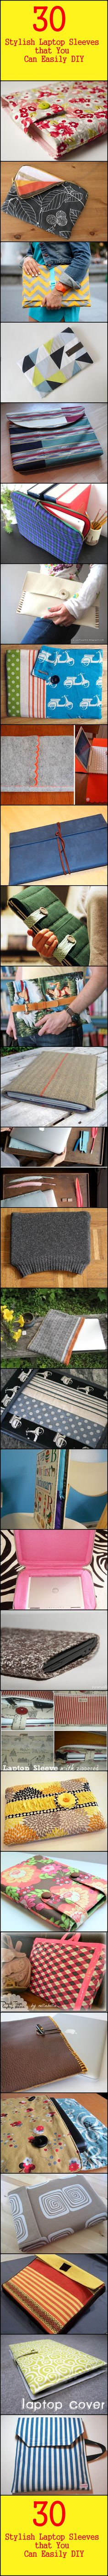 30 Stylish Laptop Sleeves that You Can Easily DIY